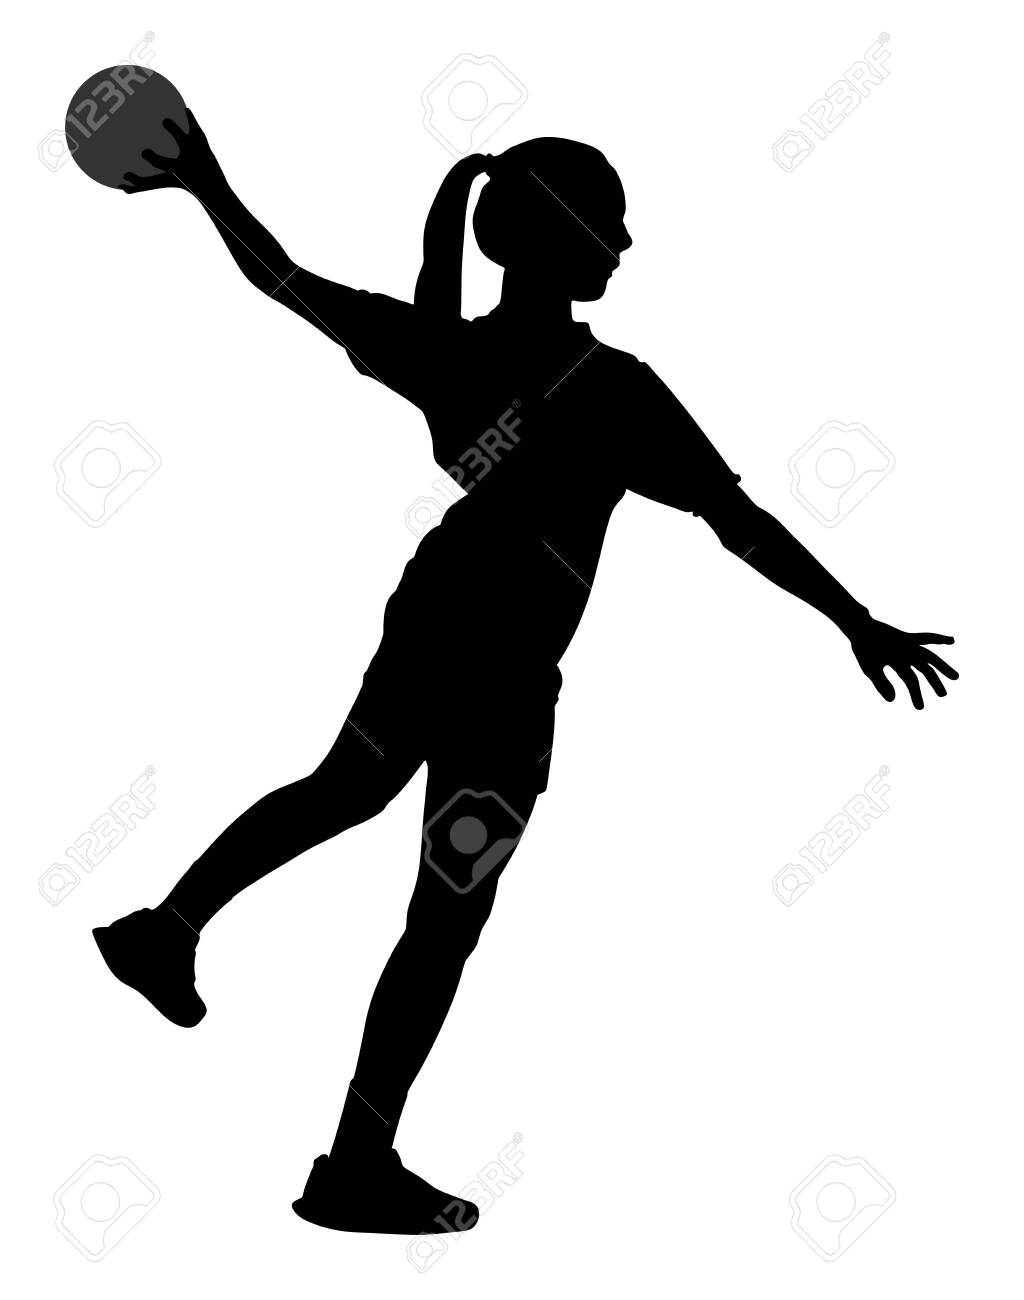 Handball player in action vector silhouette illustration isolated on white background. Woman handball player symbol. Handball girl jumping in the air. Handball (soccer) goalkeeper silhouette vector. - 128224589